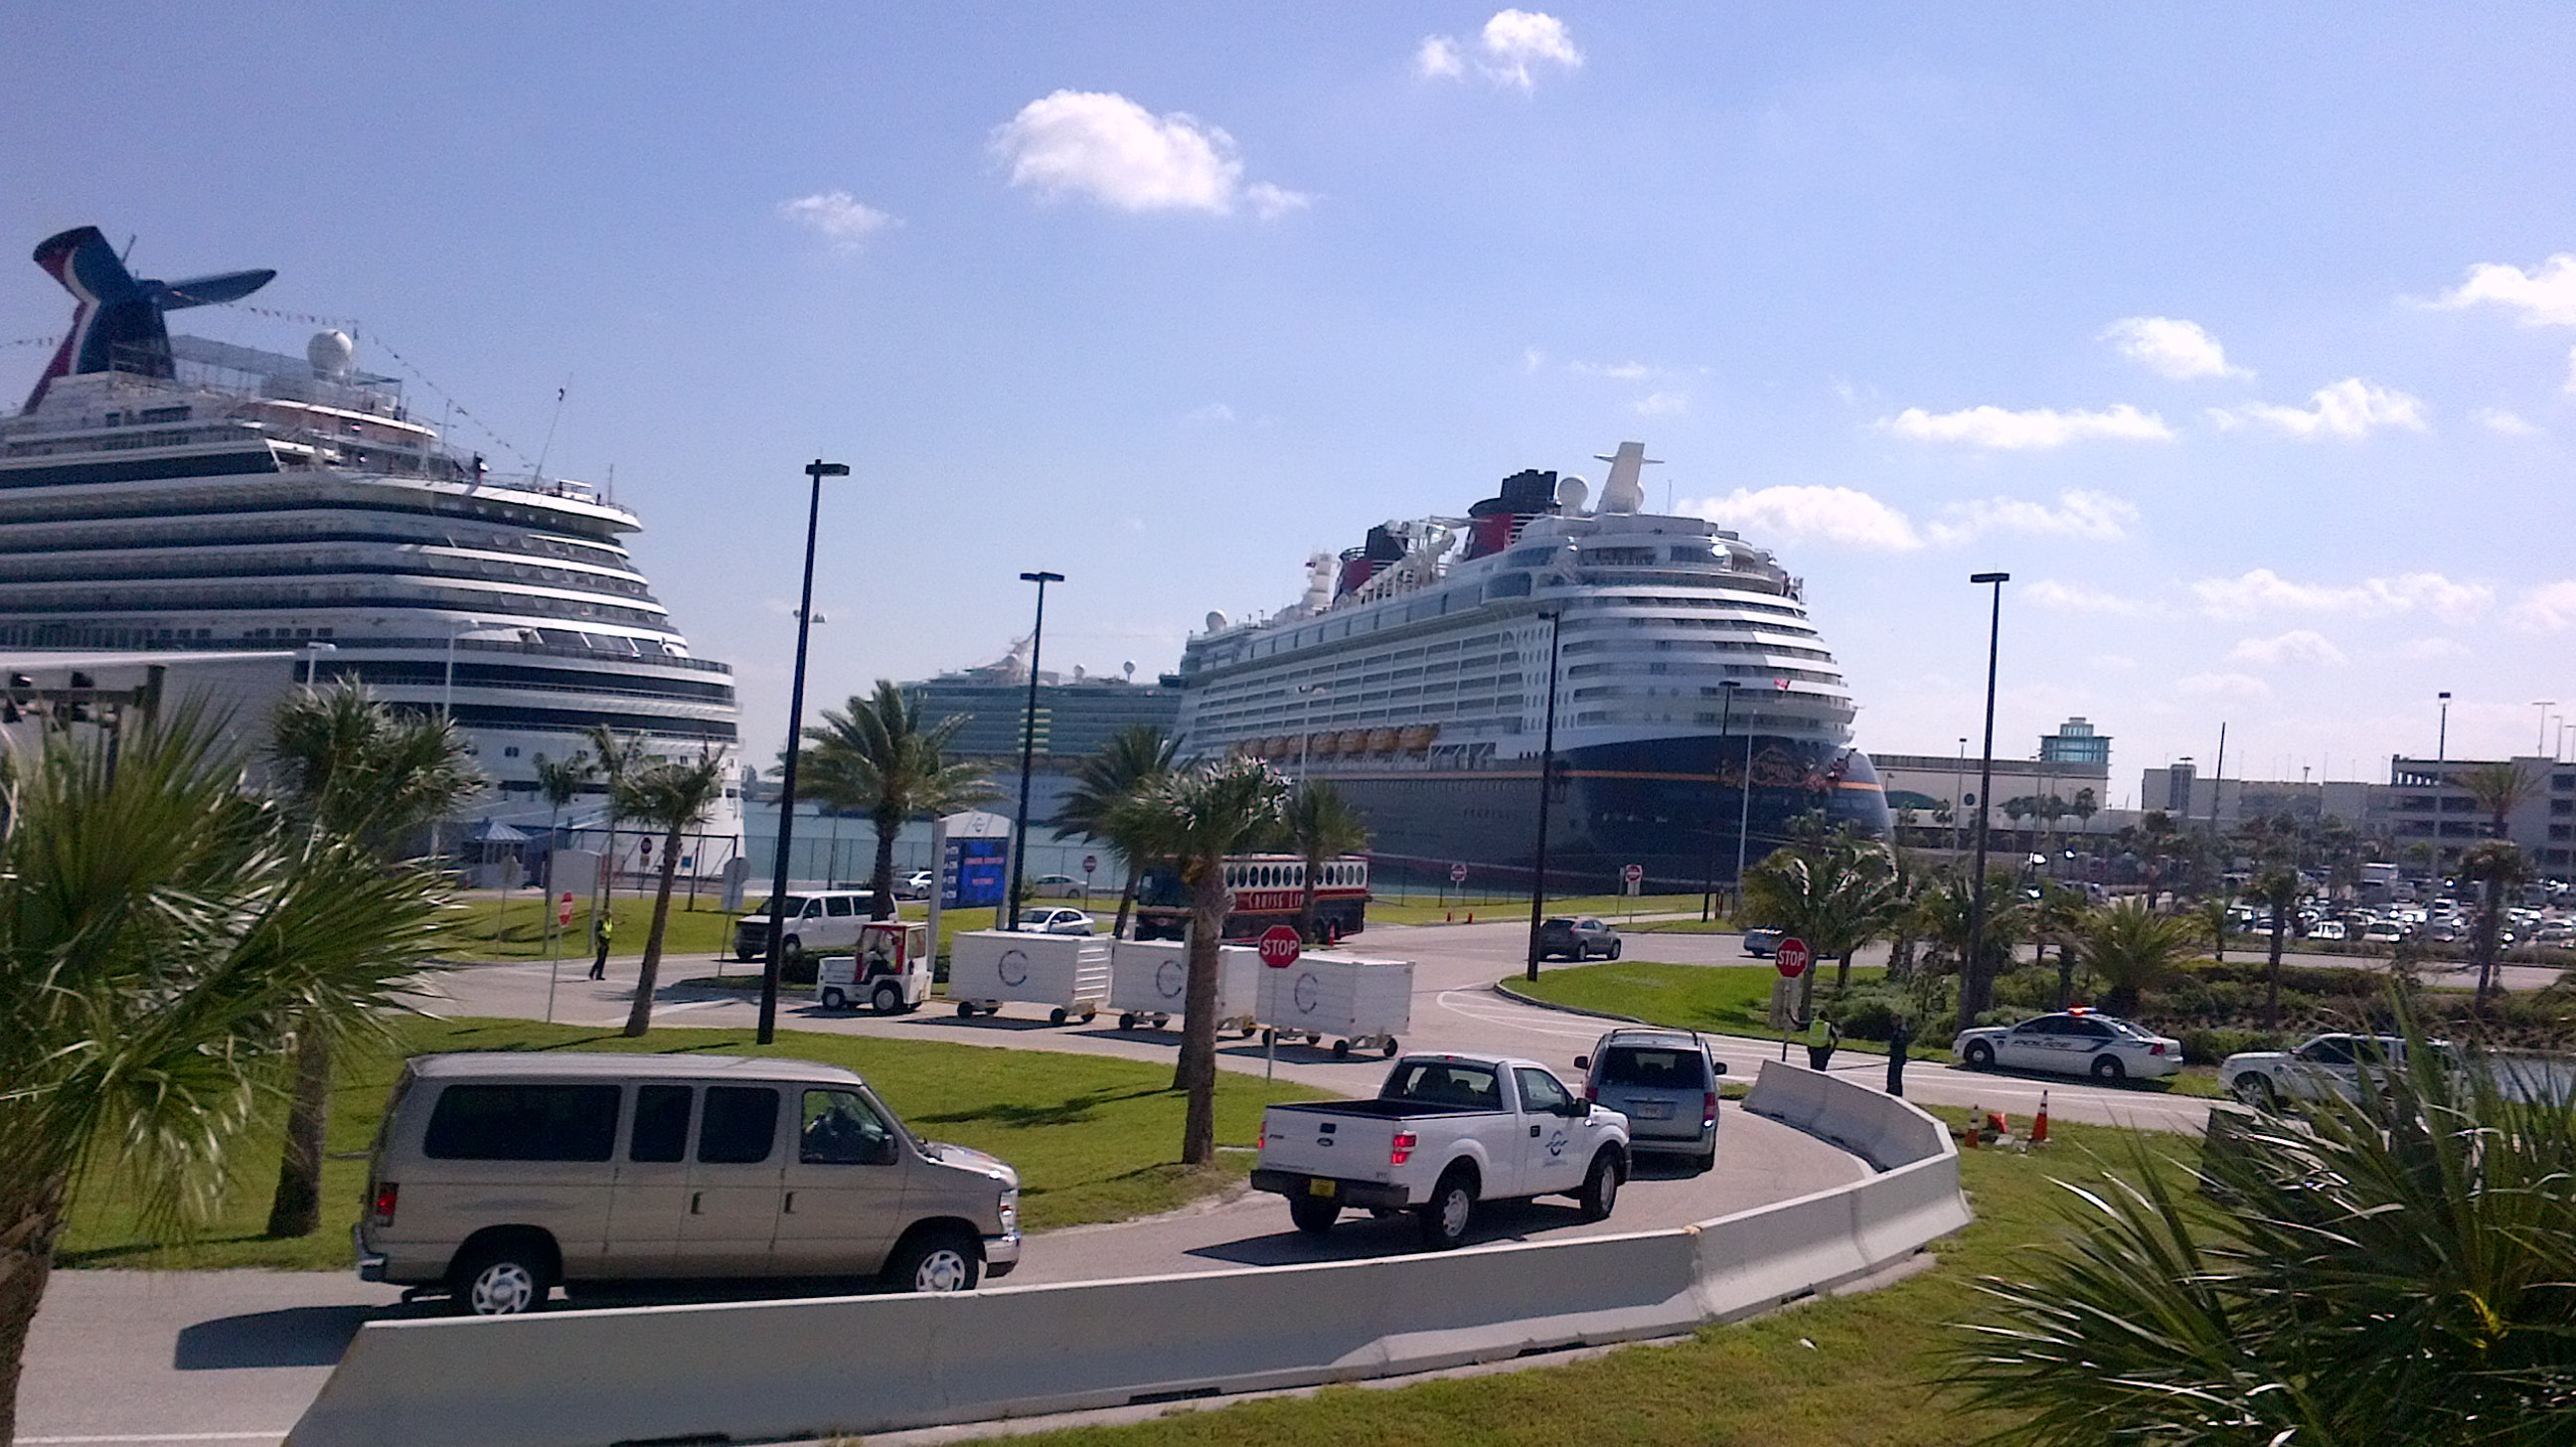 Wonderful Carnival Dream And Disney Dream